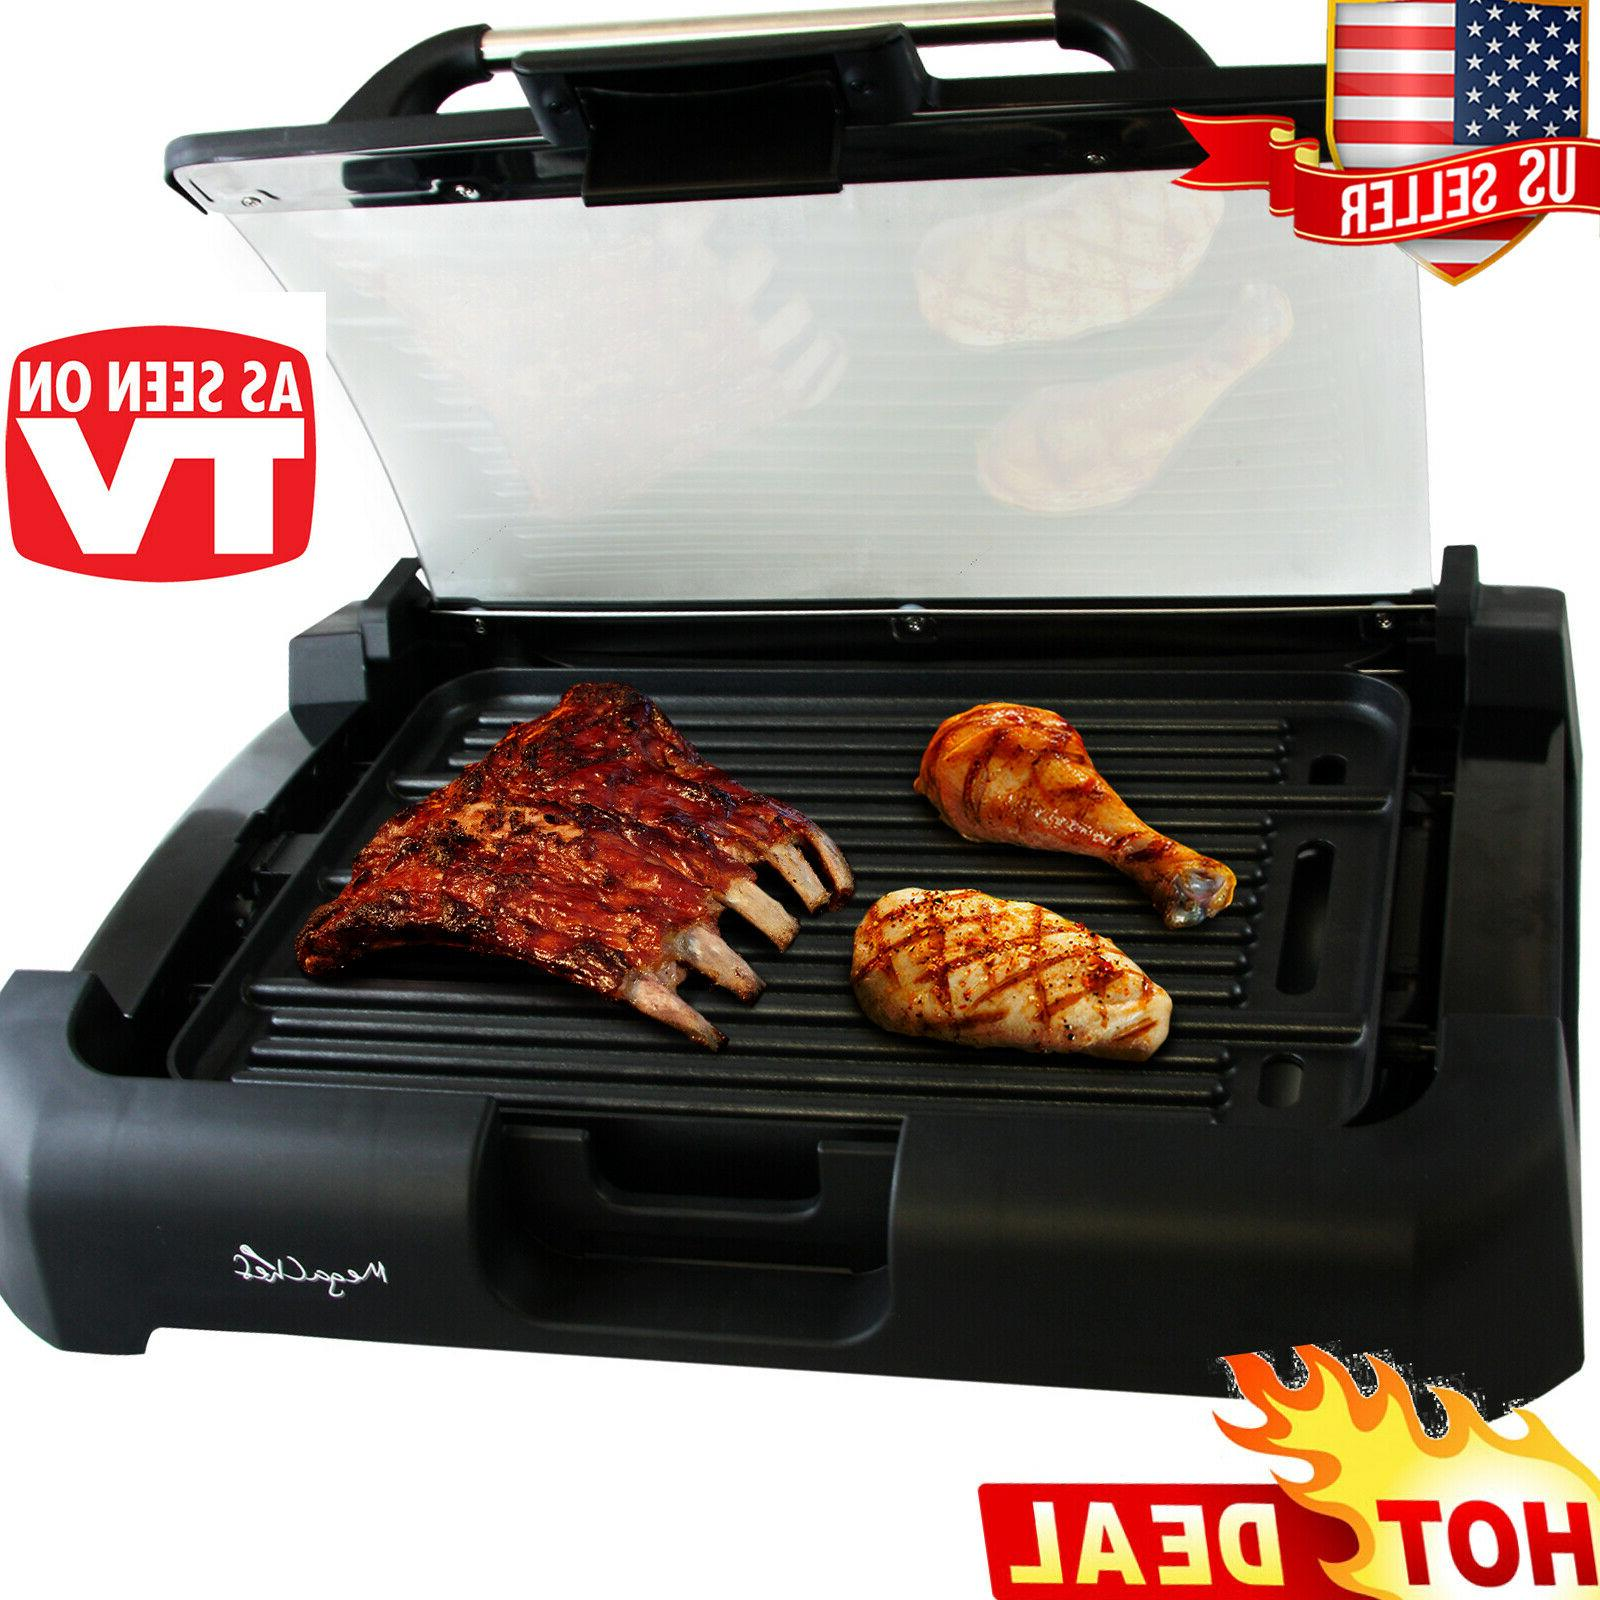 smokeless indoor electric grill 1800 watts non